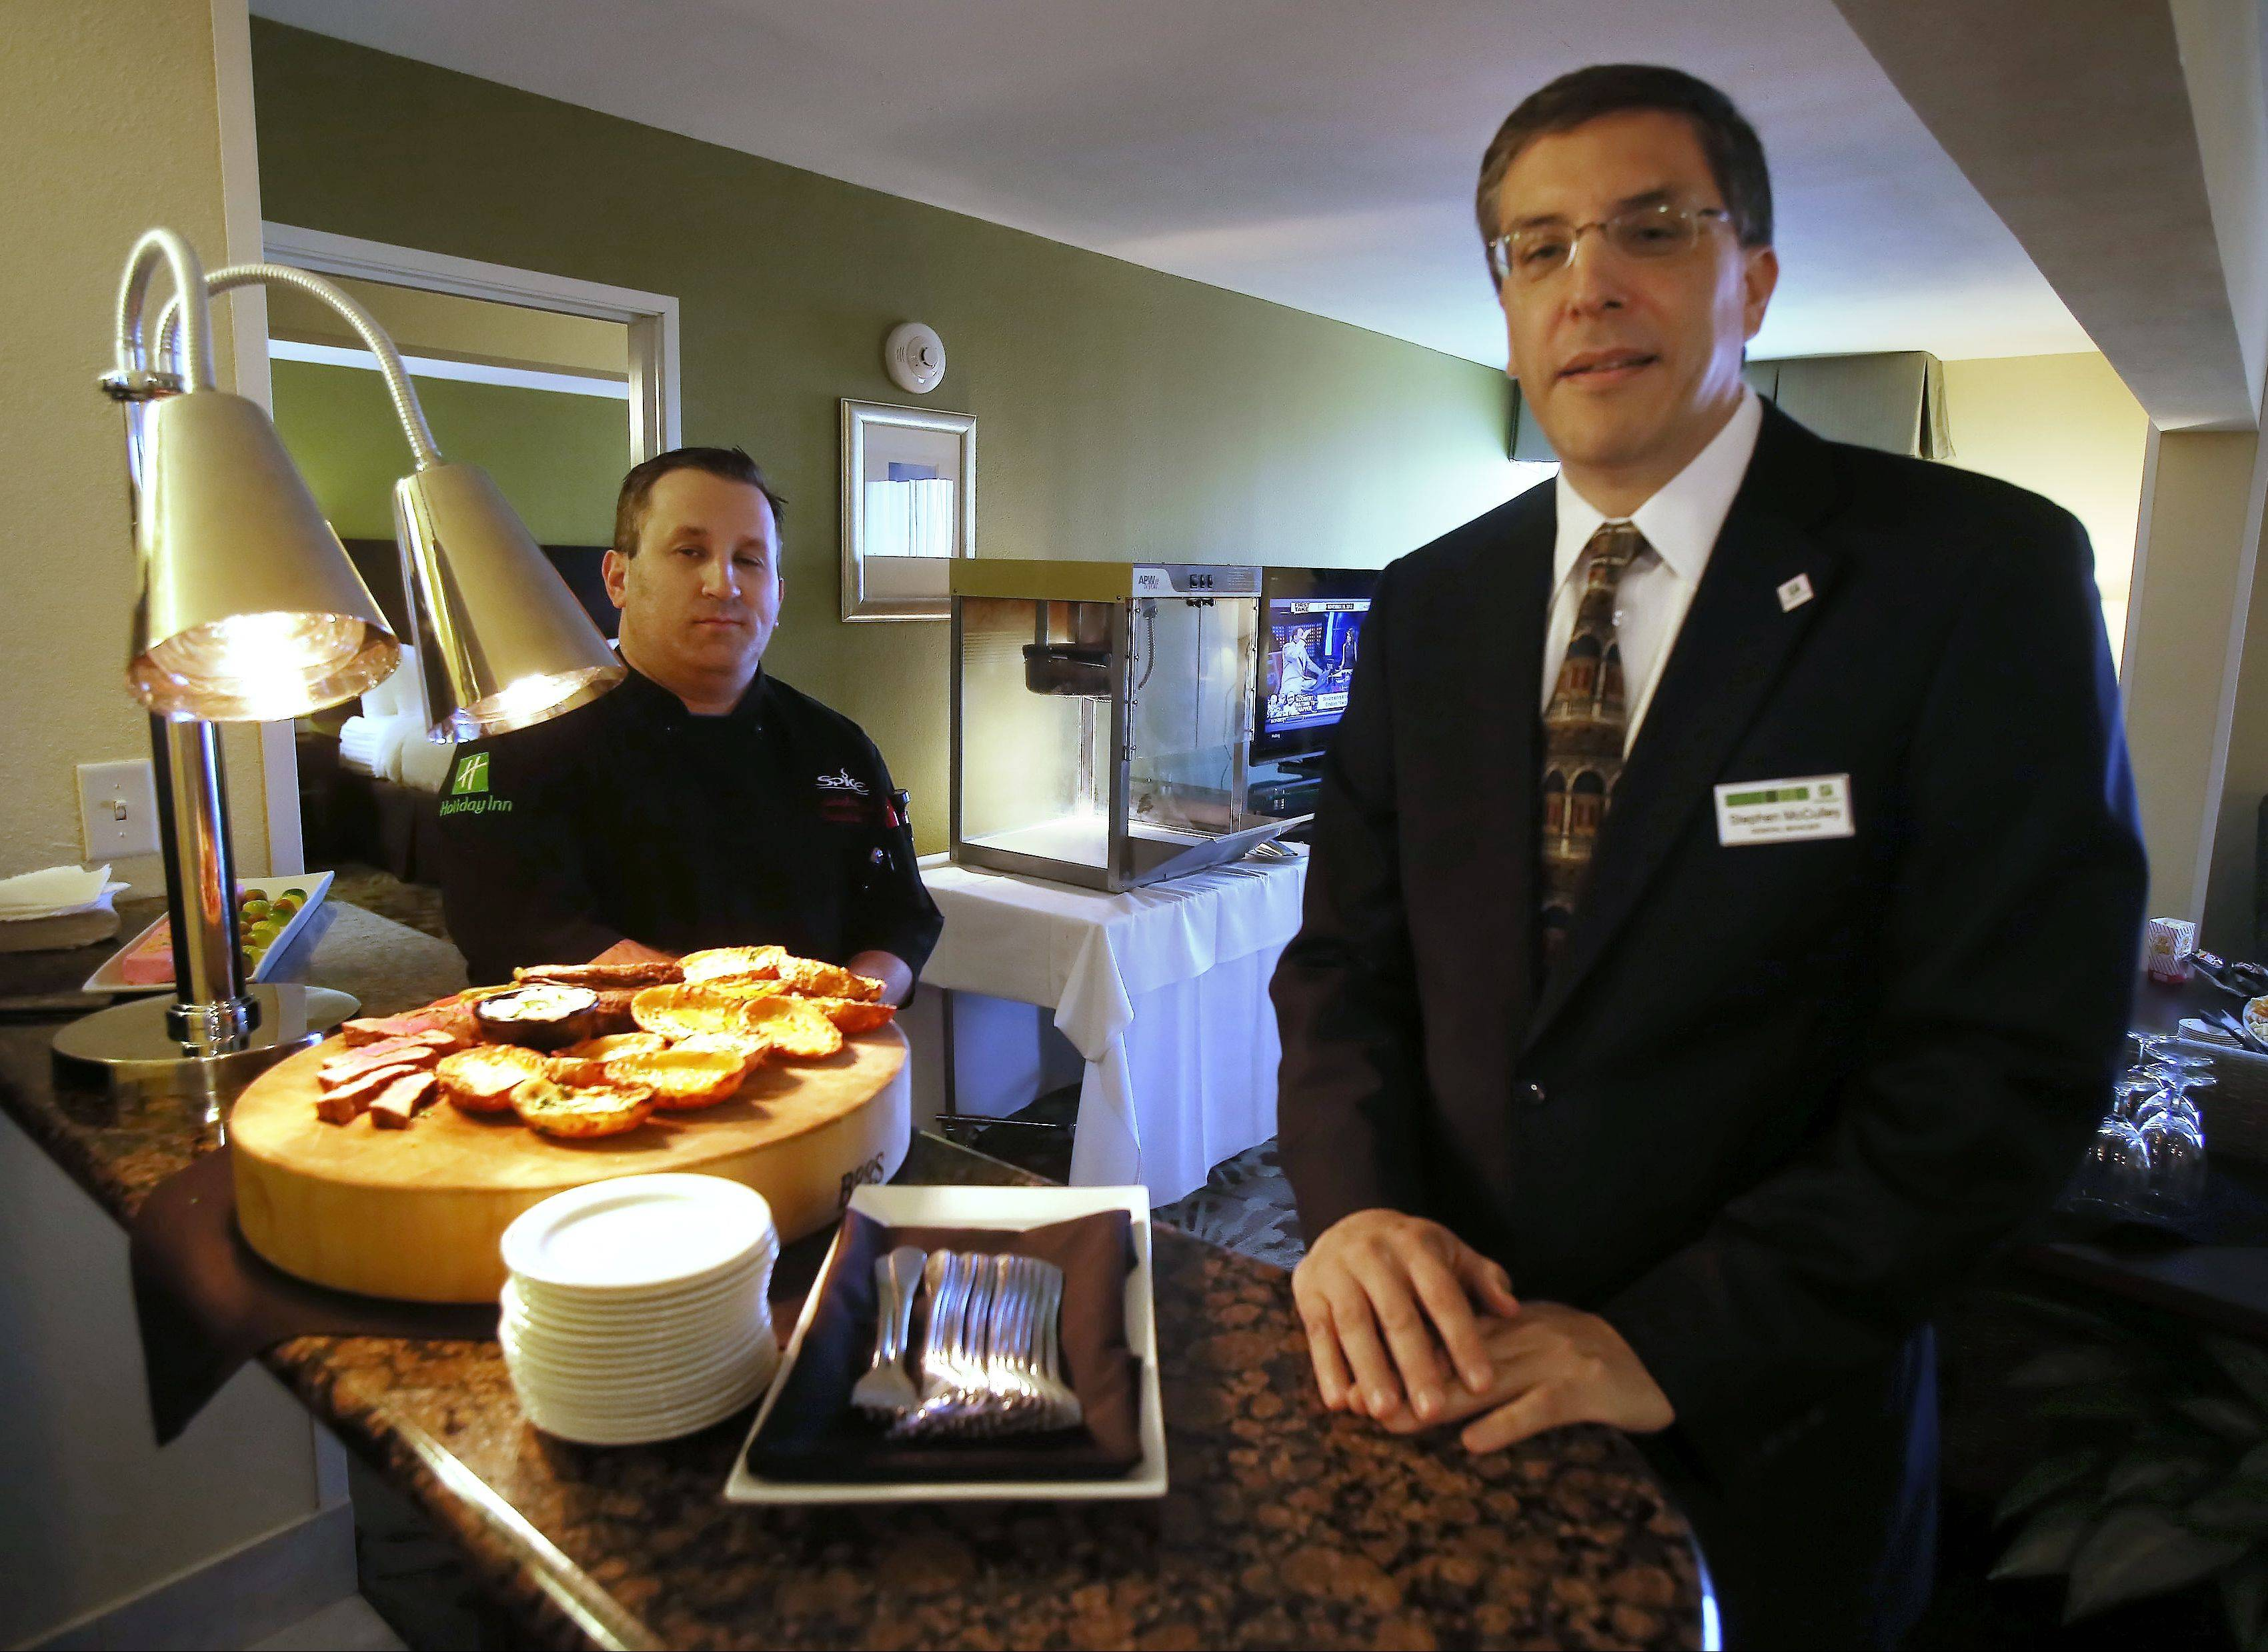 General manager Stephen McCulley, right, at the Holiday Inn Gurnee Convention Center looks forward to hosting 10 sailors from Great Lakes Naval Training Station for Thanksgiving Day. The sailors will be fed dinner and lighter fare prepared under the direction of executive chef Christopher Solare, and have use of this Presidential Suite during their stay.